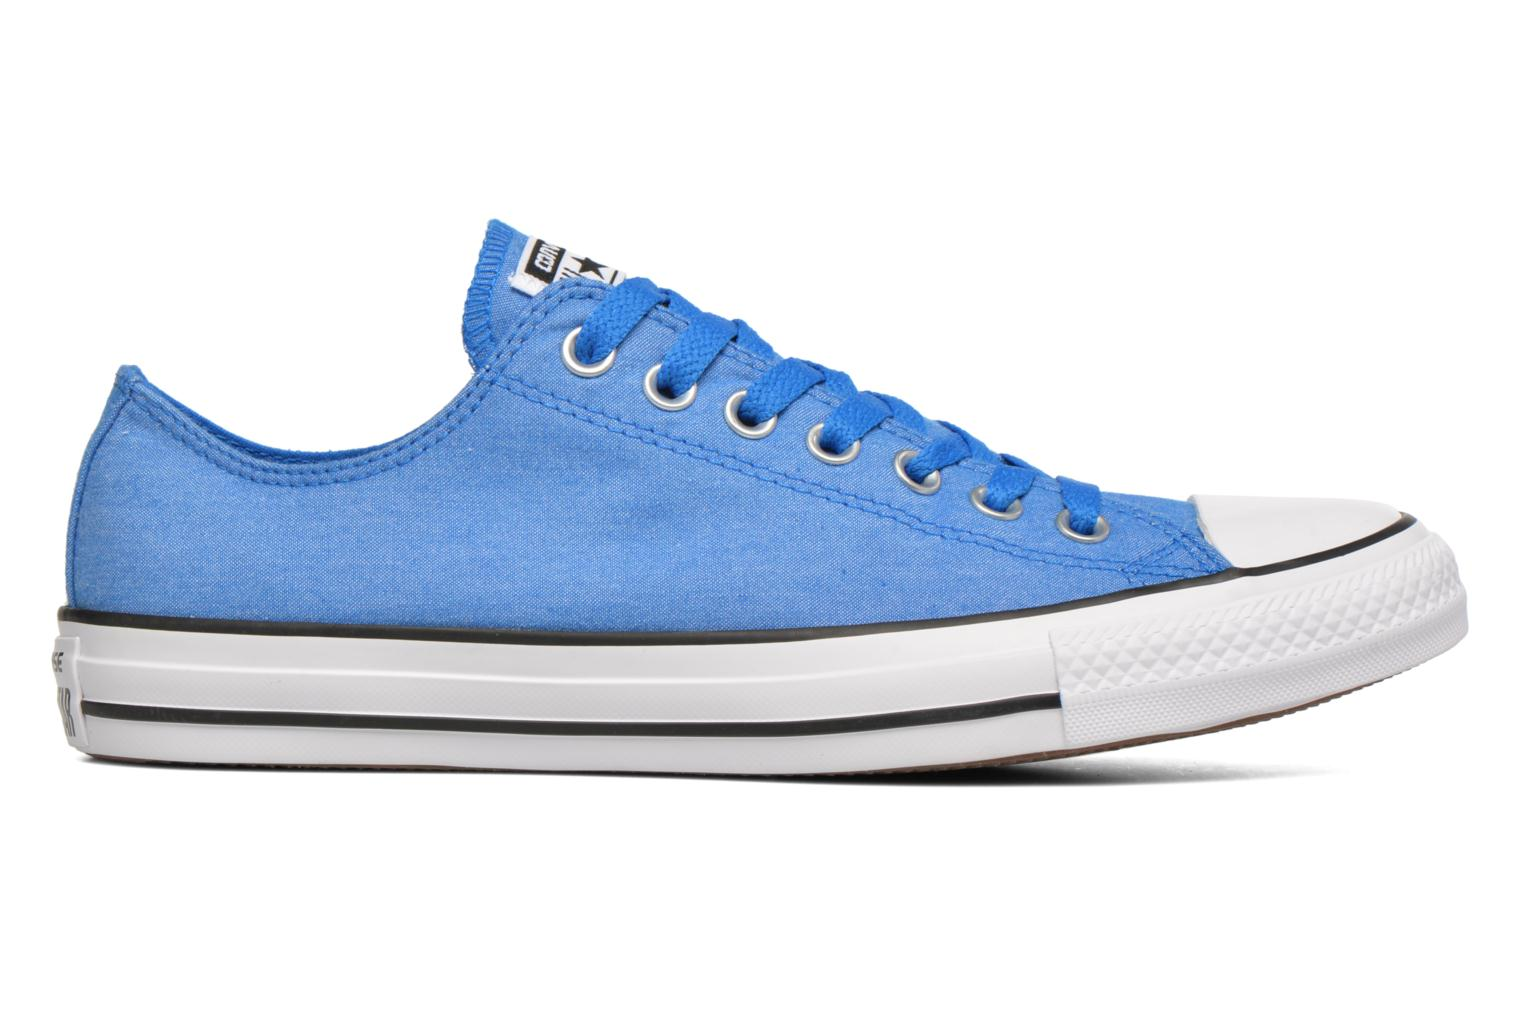 Chuck Taylor All Star Ox Chambray Soar/White/Black